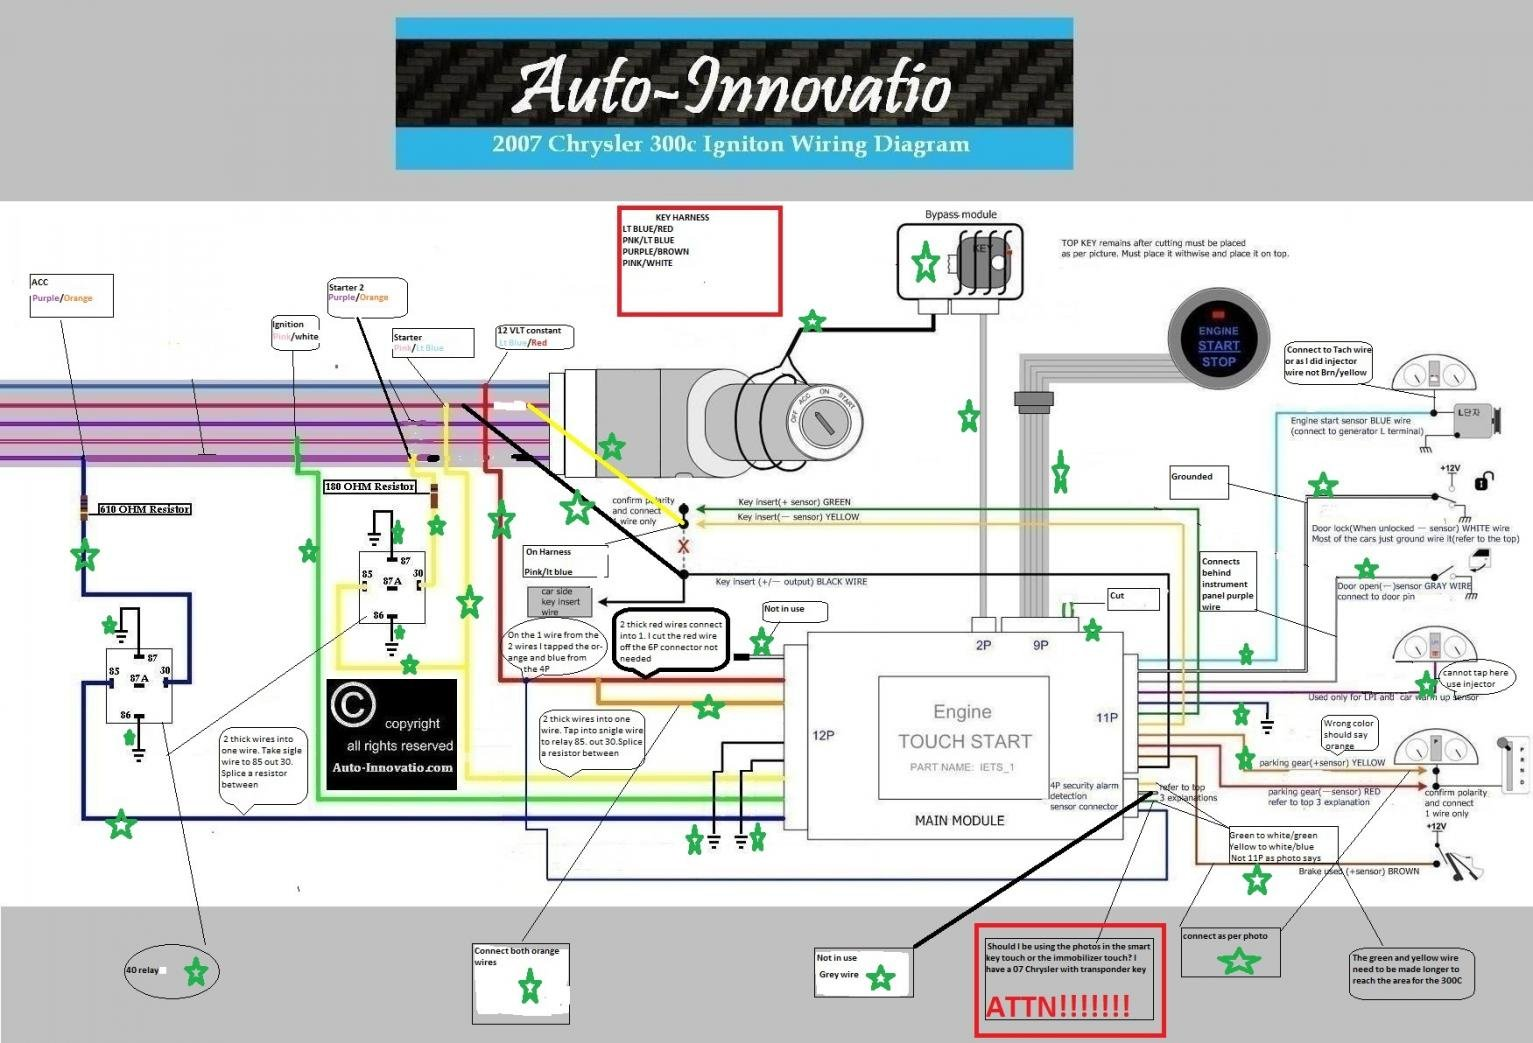 chrysler 300 wiring diagram 14 brt feba arbeitsvermittlung de \u2022chrysler starter wiring yhu oxnanospin uk u2022 rh yhu oxnanospin uk 1965 chrysler 300 wiring diagram